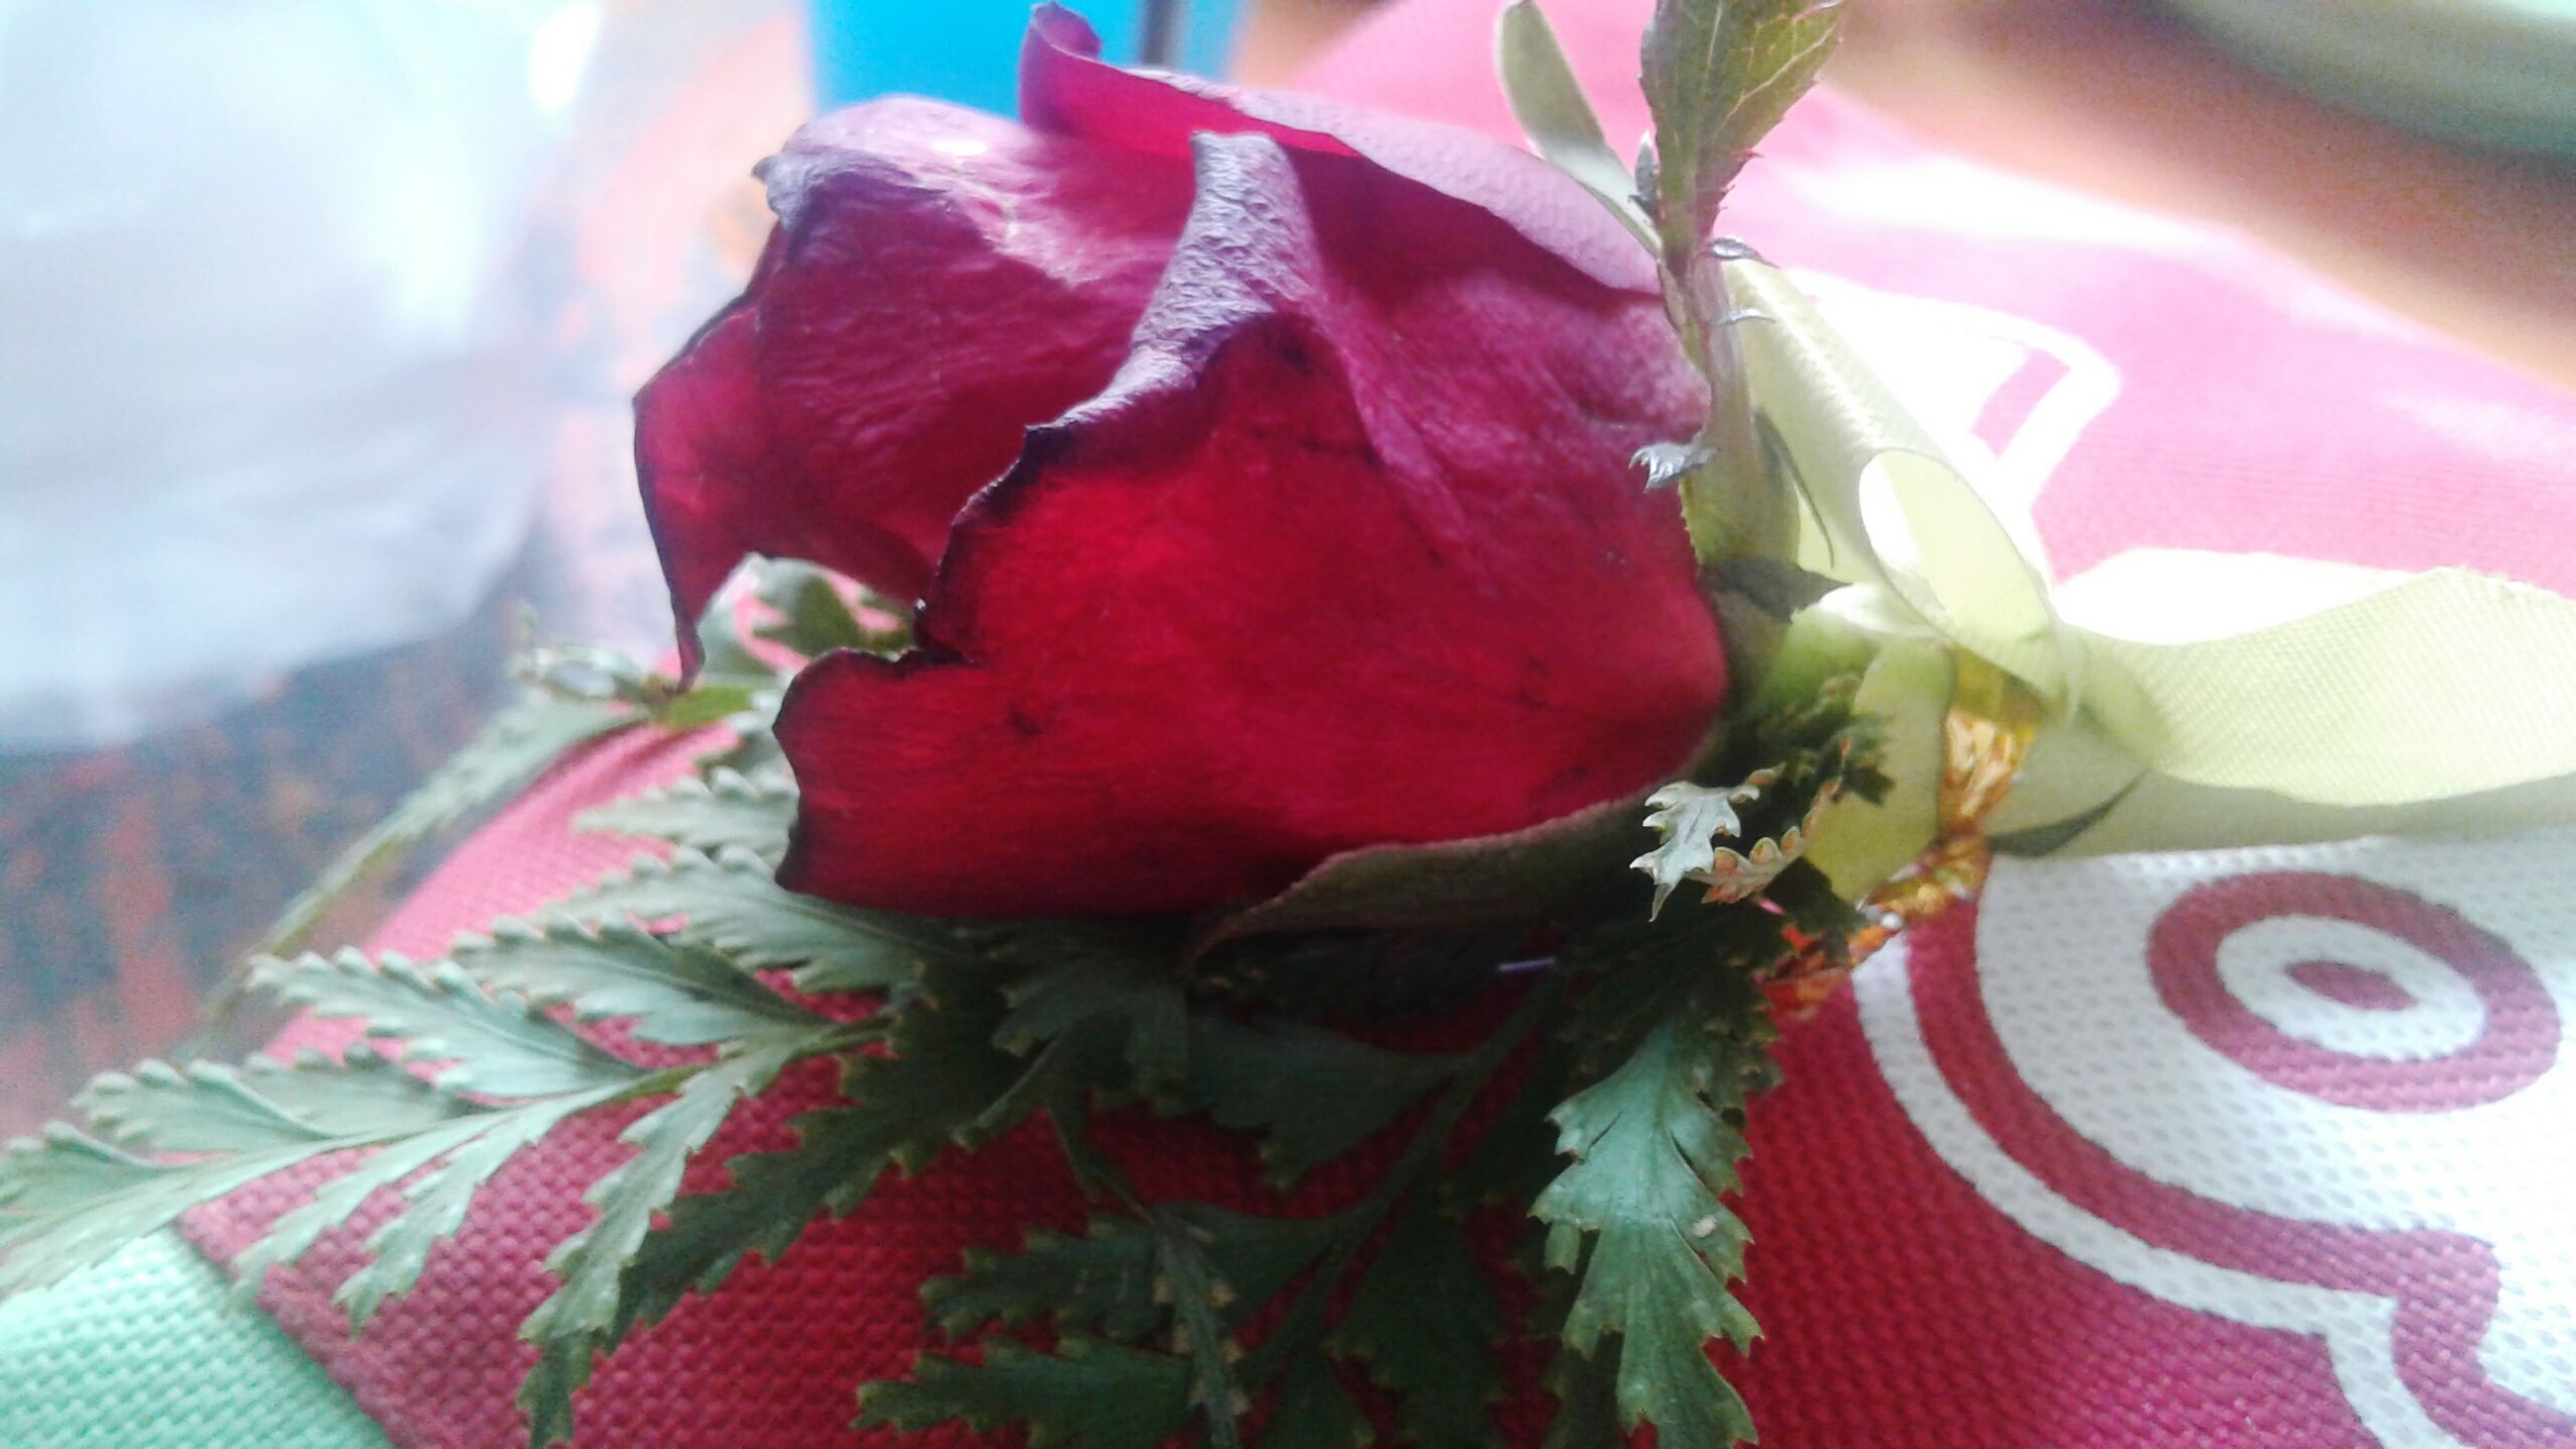 flower, nature, petal, red, growth, freshness, fragility, plant, close-up, beauty in nature, flower head, no people, day, outdoors, maroon